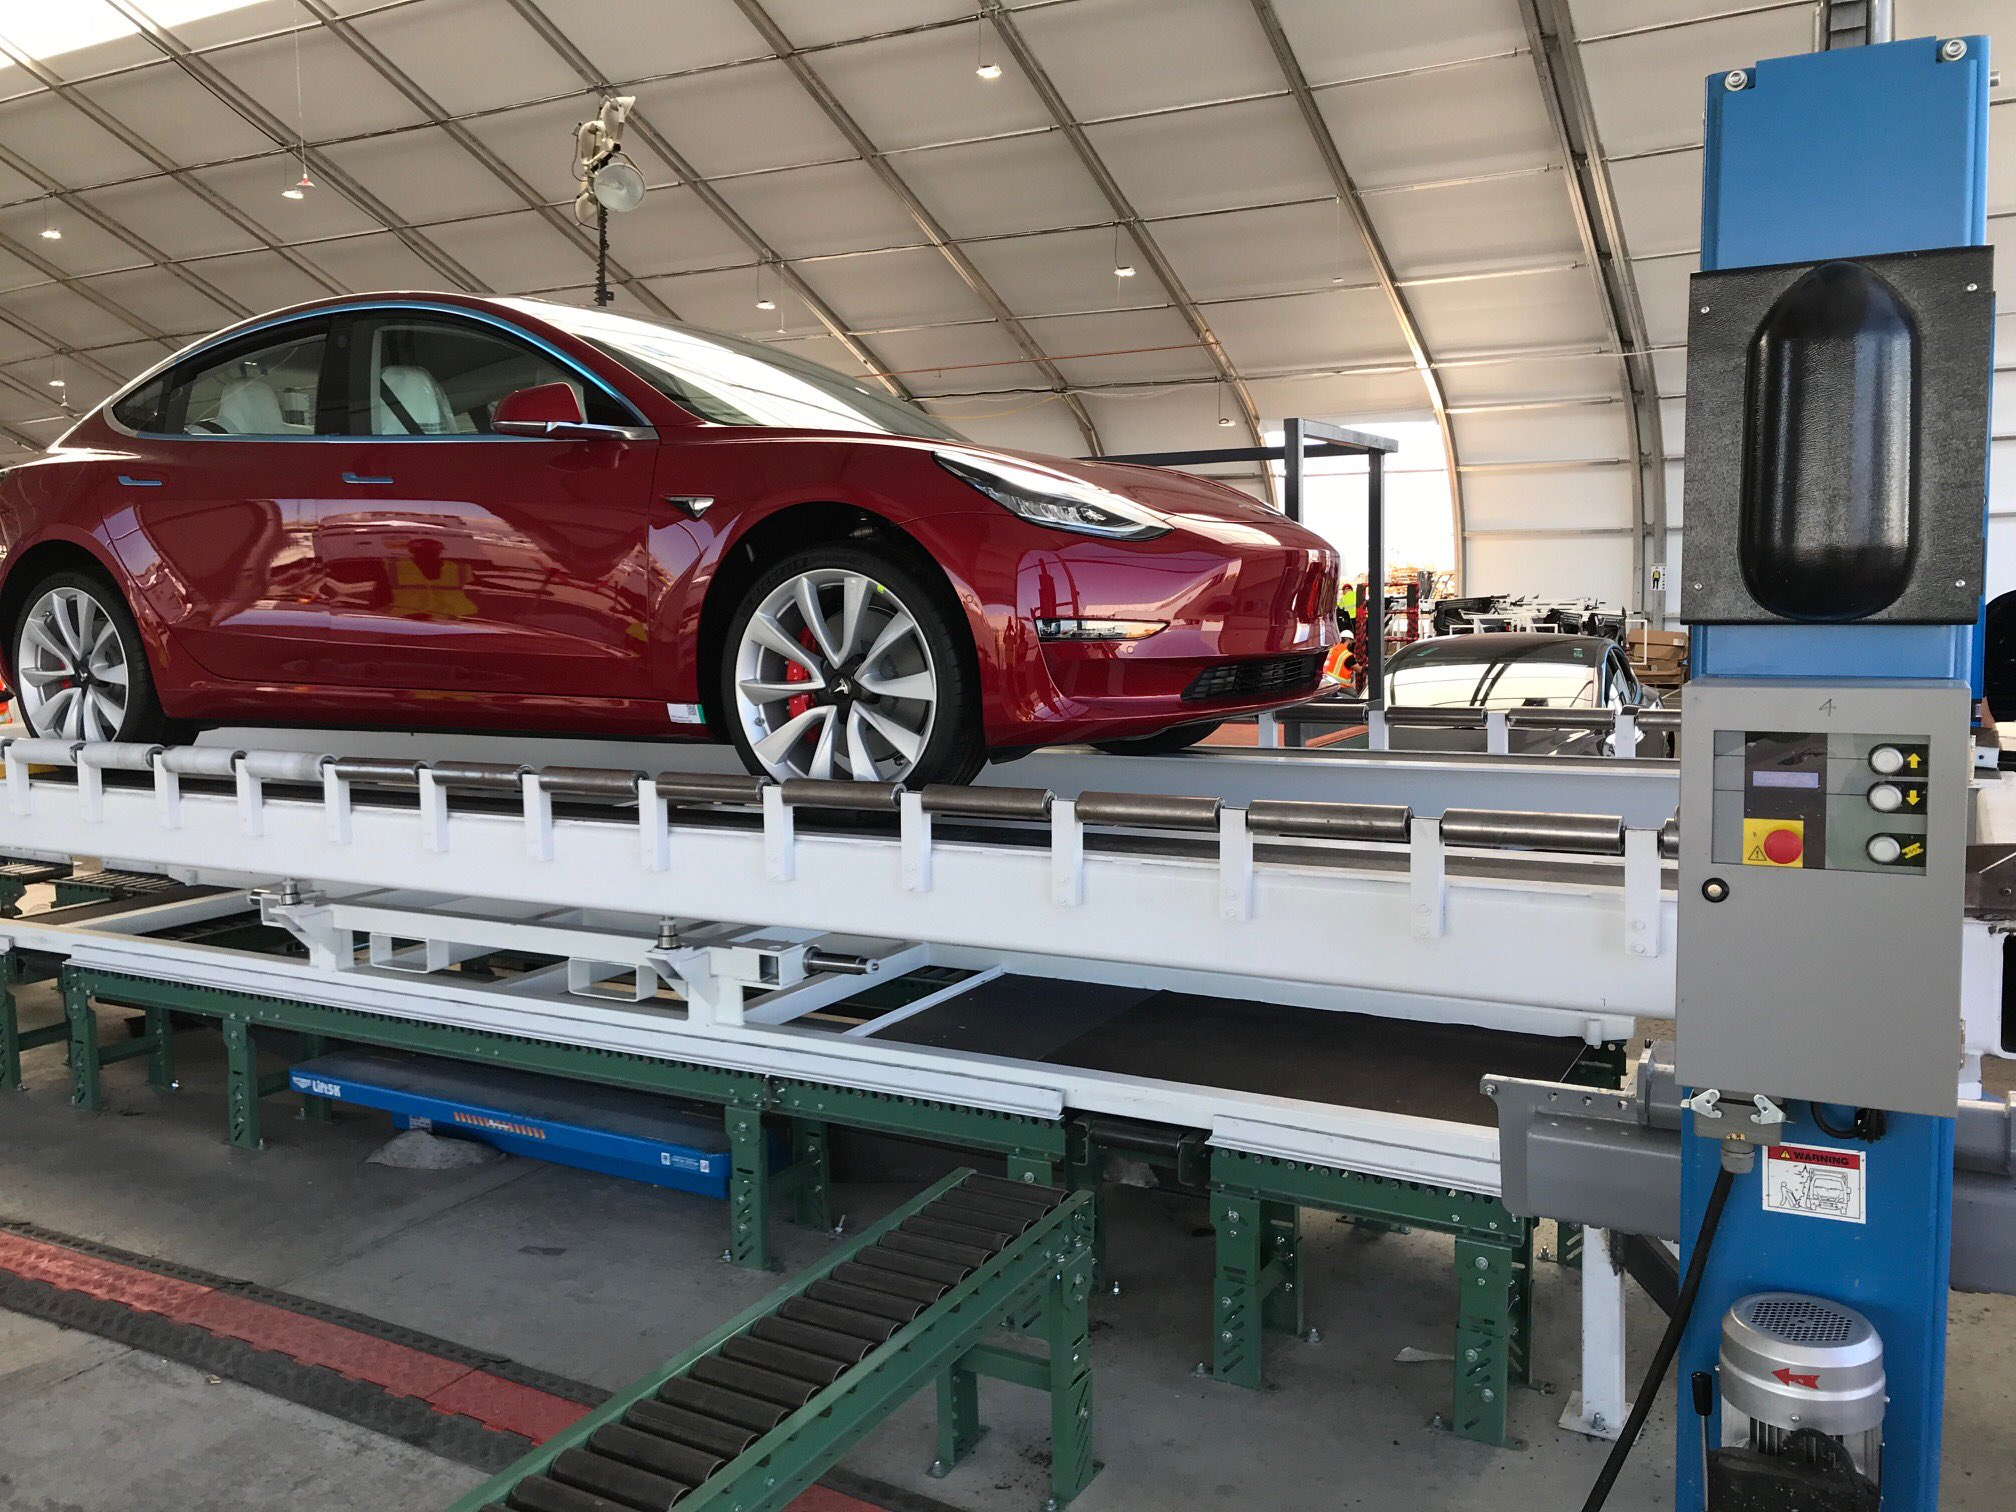 $35,000 Tesla Model 3 deliveries still delayed